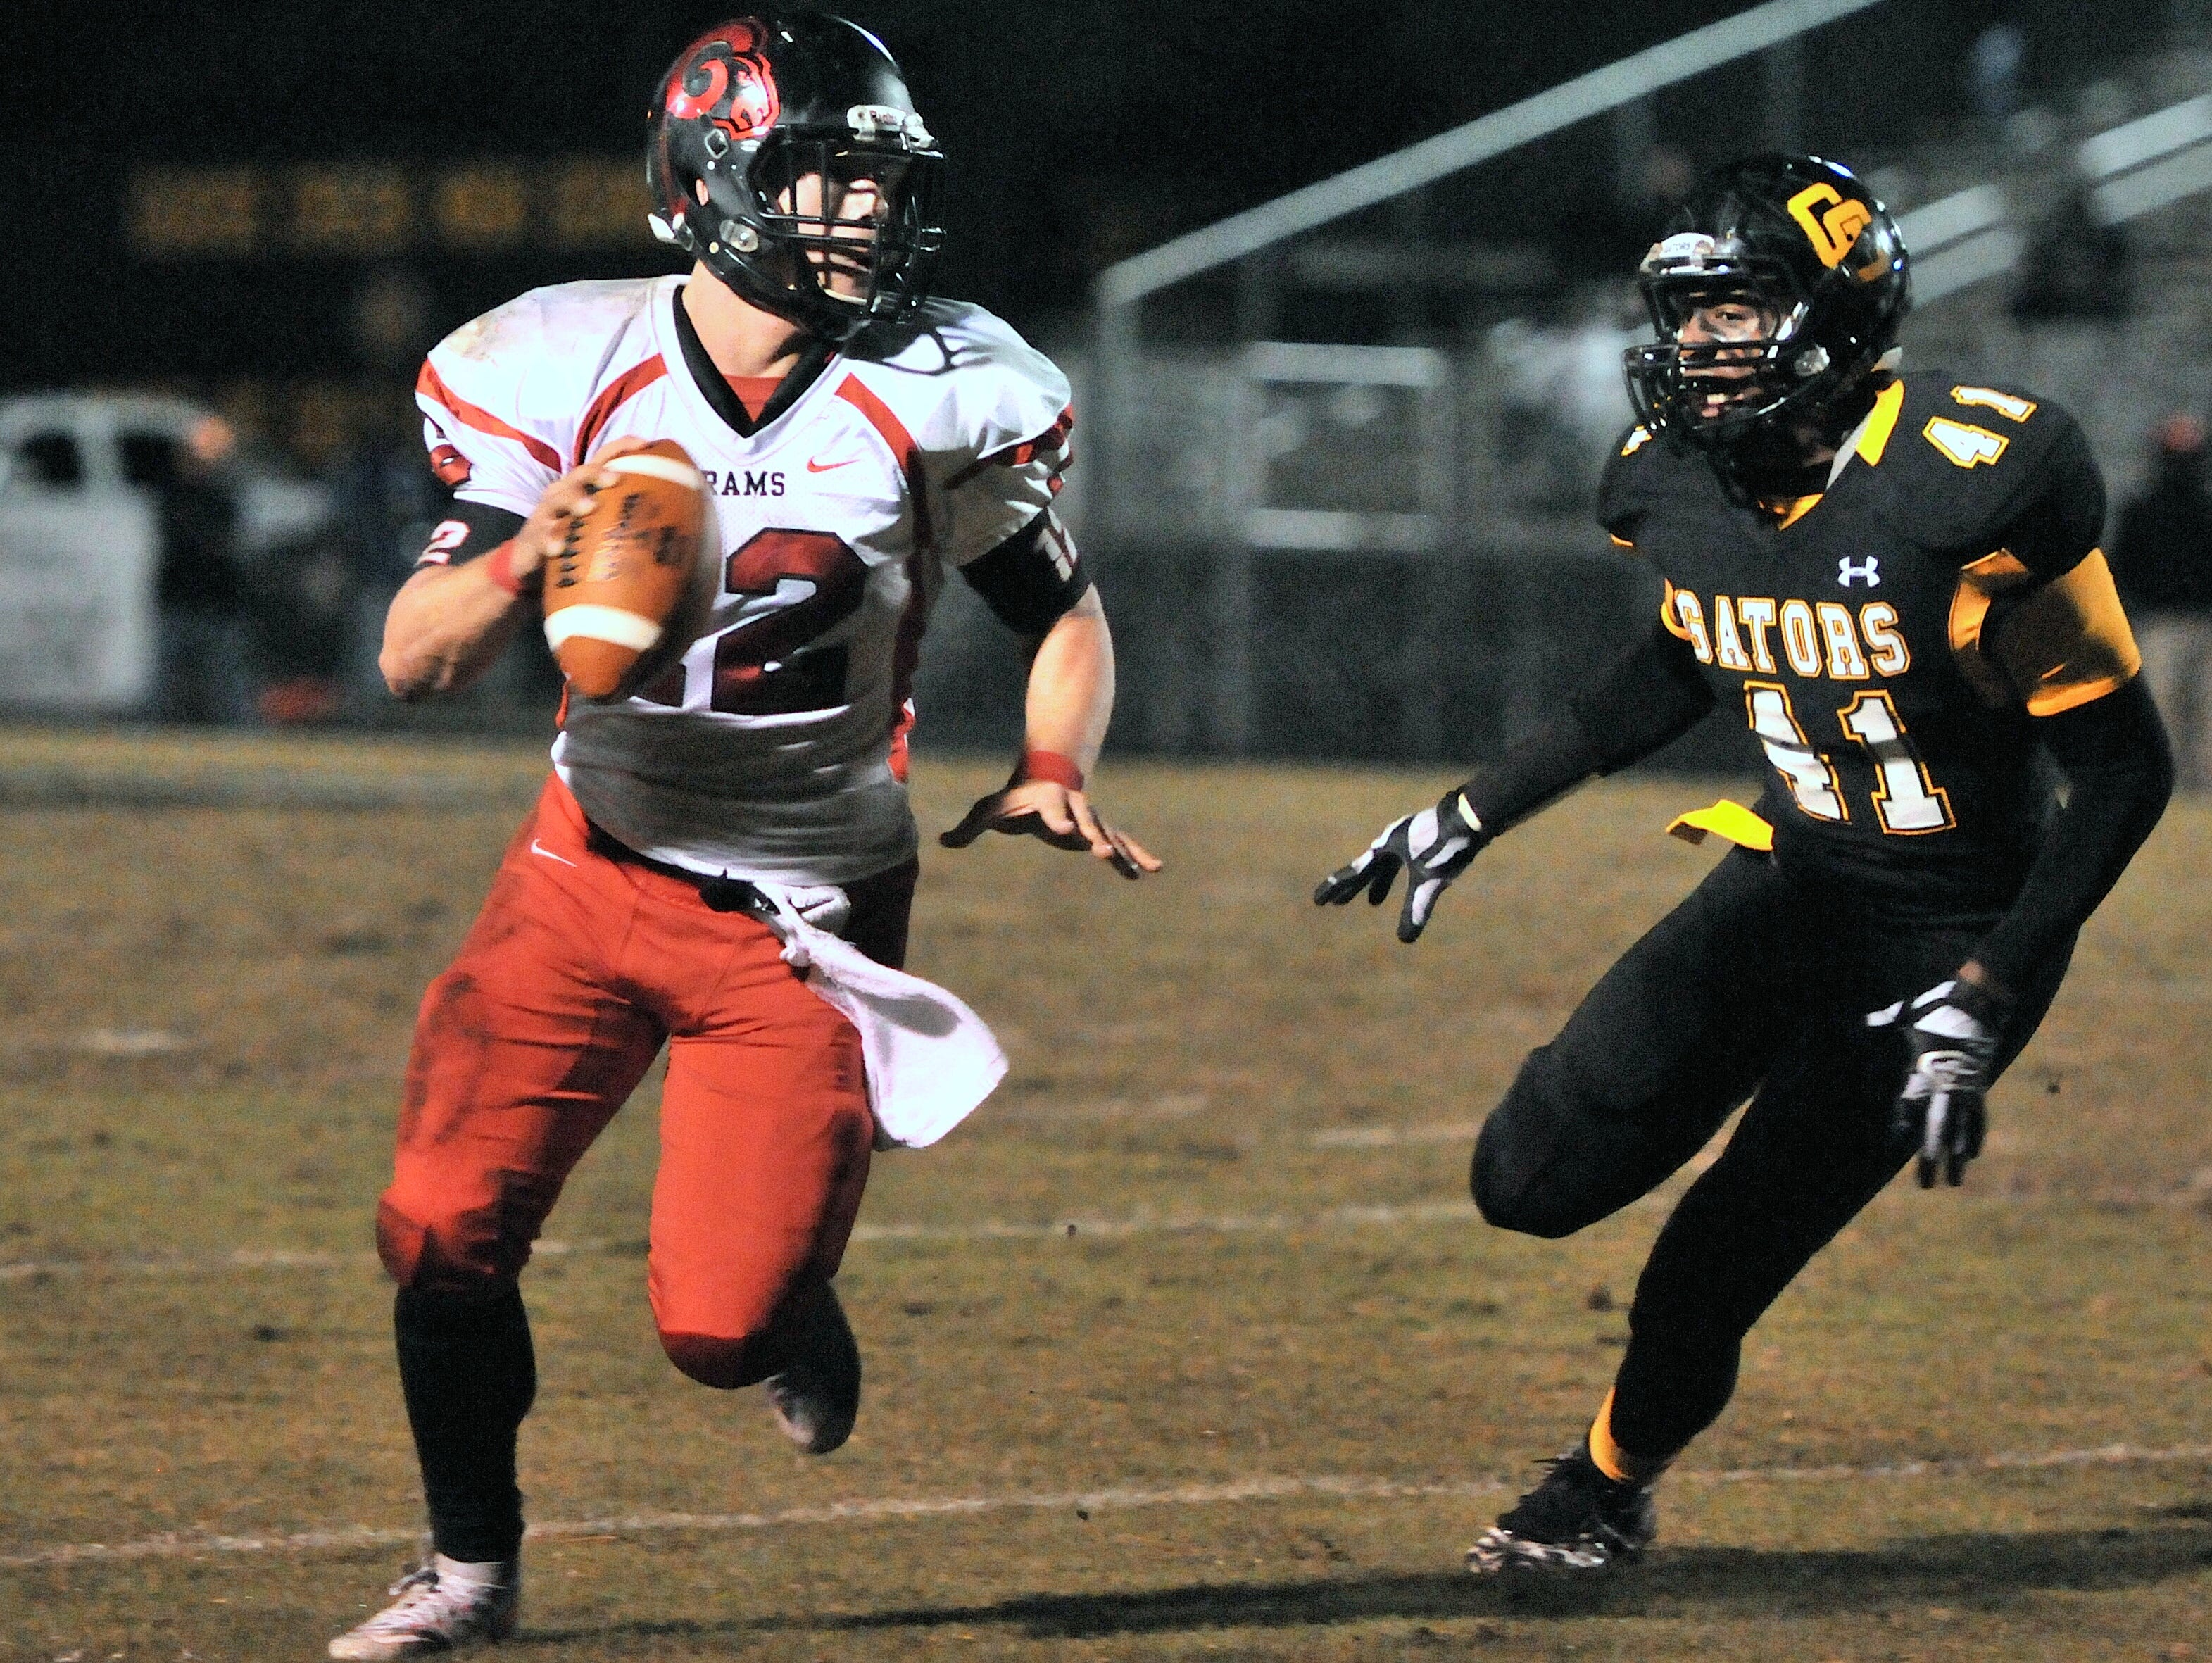 Hillcrest quarterback Colin Sneed looks upfield while being pursued by Goose Creek linebacker Tory Burrell